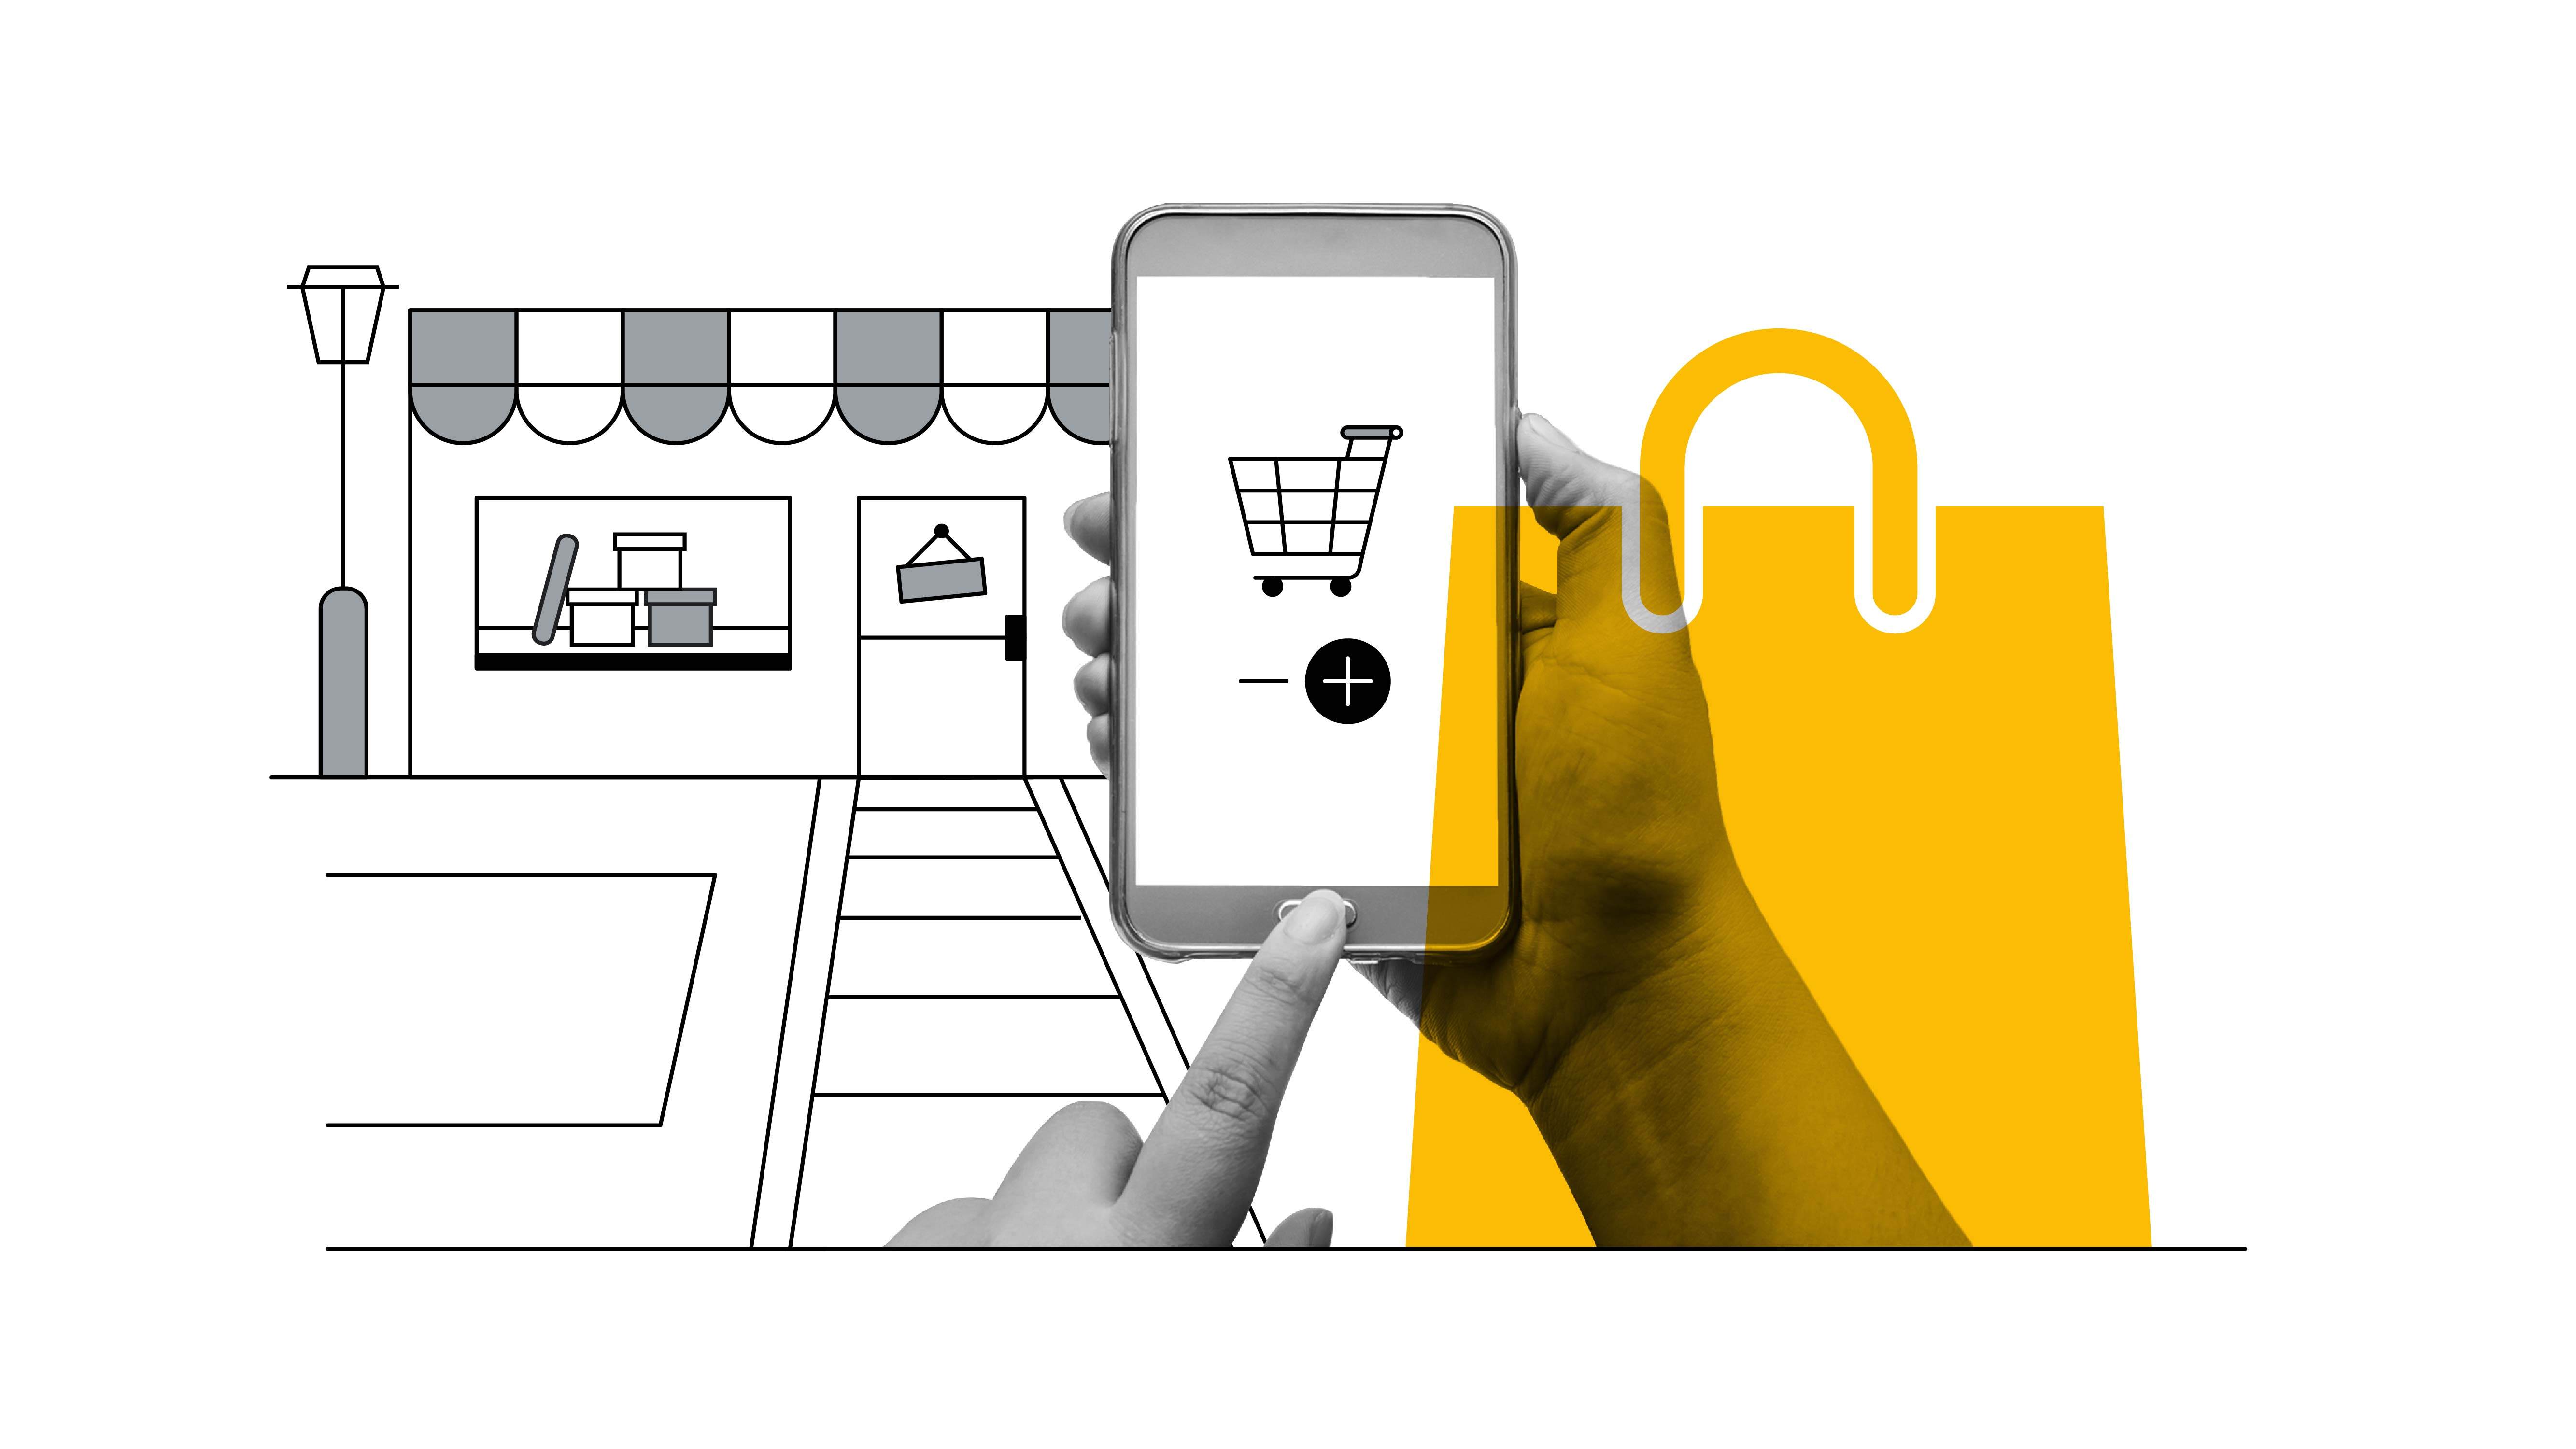 A black-and-white photo shows an individual looking at their smartphone and considering a retail purchase, with a large shopping cart on the screen. In the distance is a black-and-white illustration of a storefront with boxes in the window. Overlaid on to